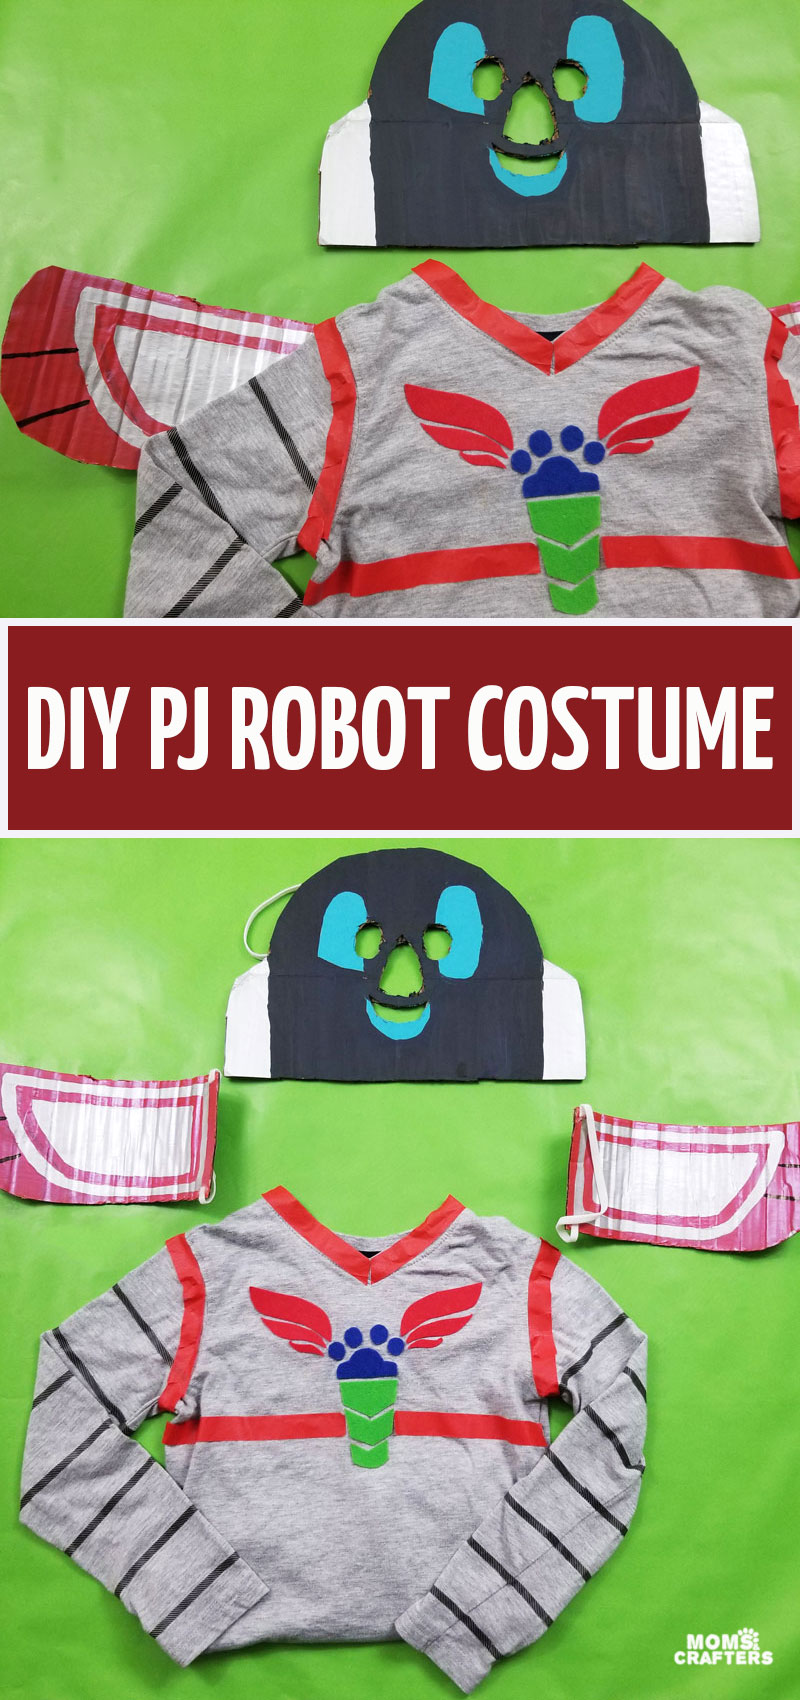 Craft your own PJ Robot costume - a fun DIY PJ Masks costume idea to make for Halloween, or Purim! This fun costume is made from an upcycled cardboard box and uses normal clothes that can be reused.